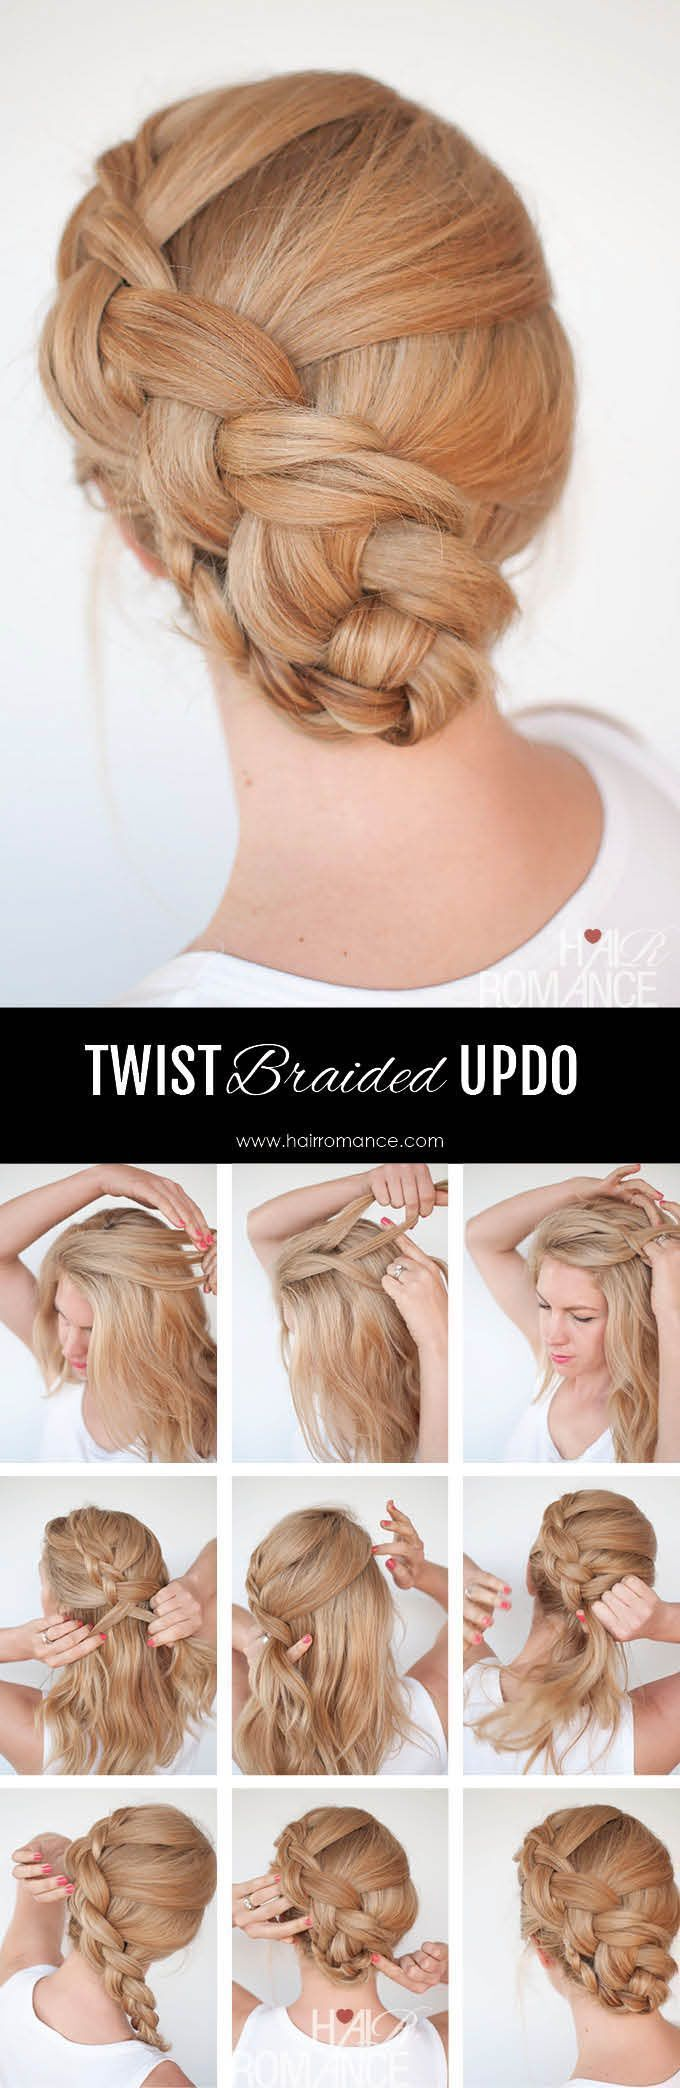 Nuevo tutorial de peinado de trenza – the twist braid updo – #Braid #Hairstyle #Tutoria …